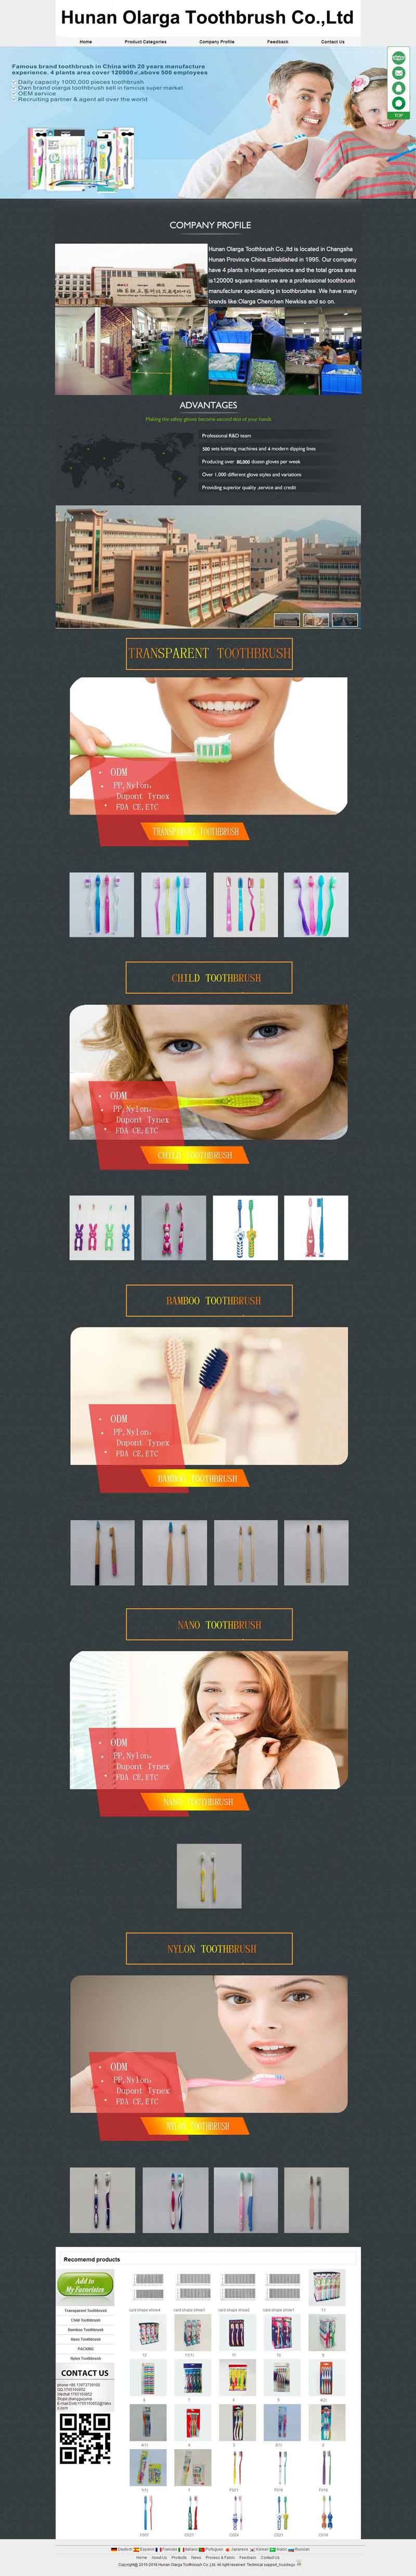 Hunan Olarga Toothbrush Co.,Ltd